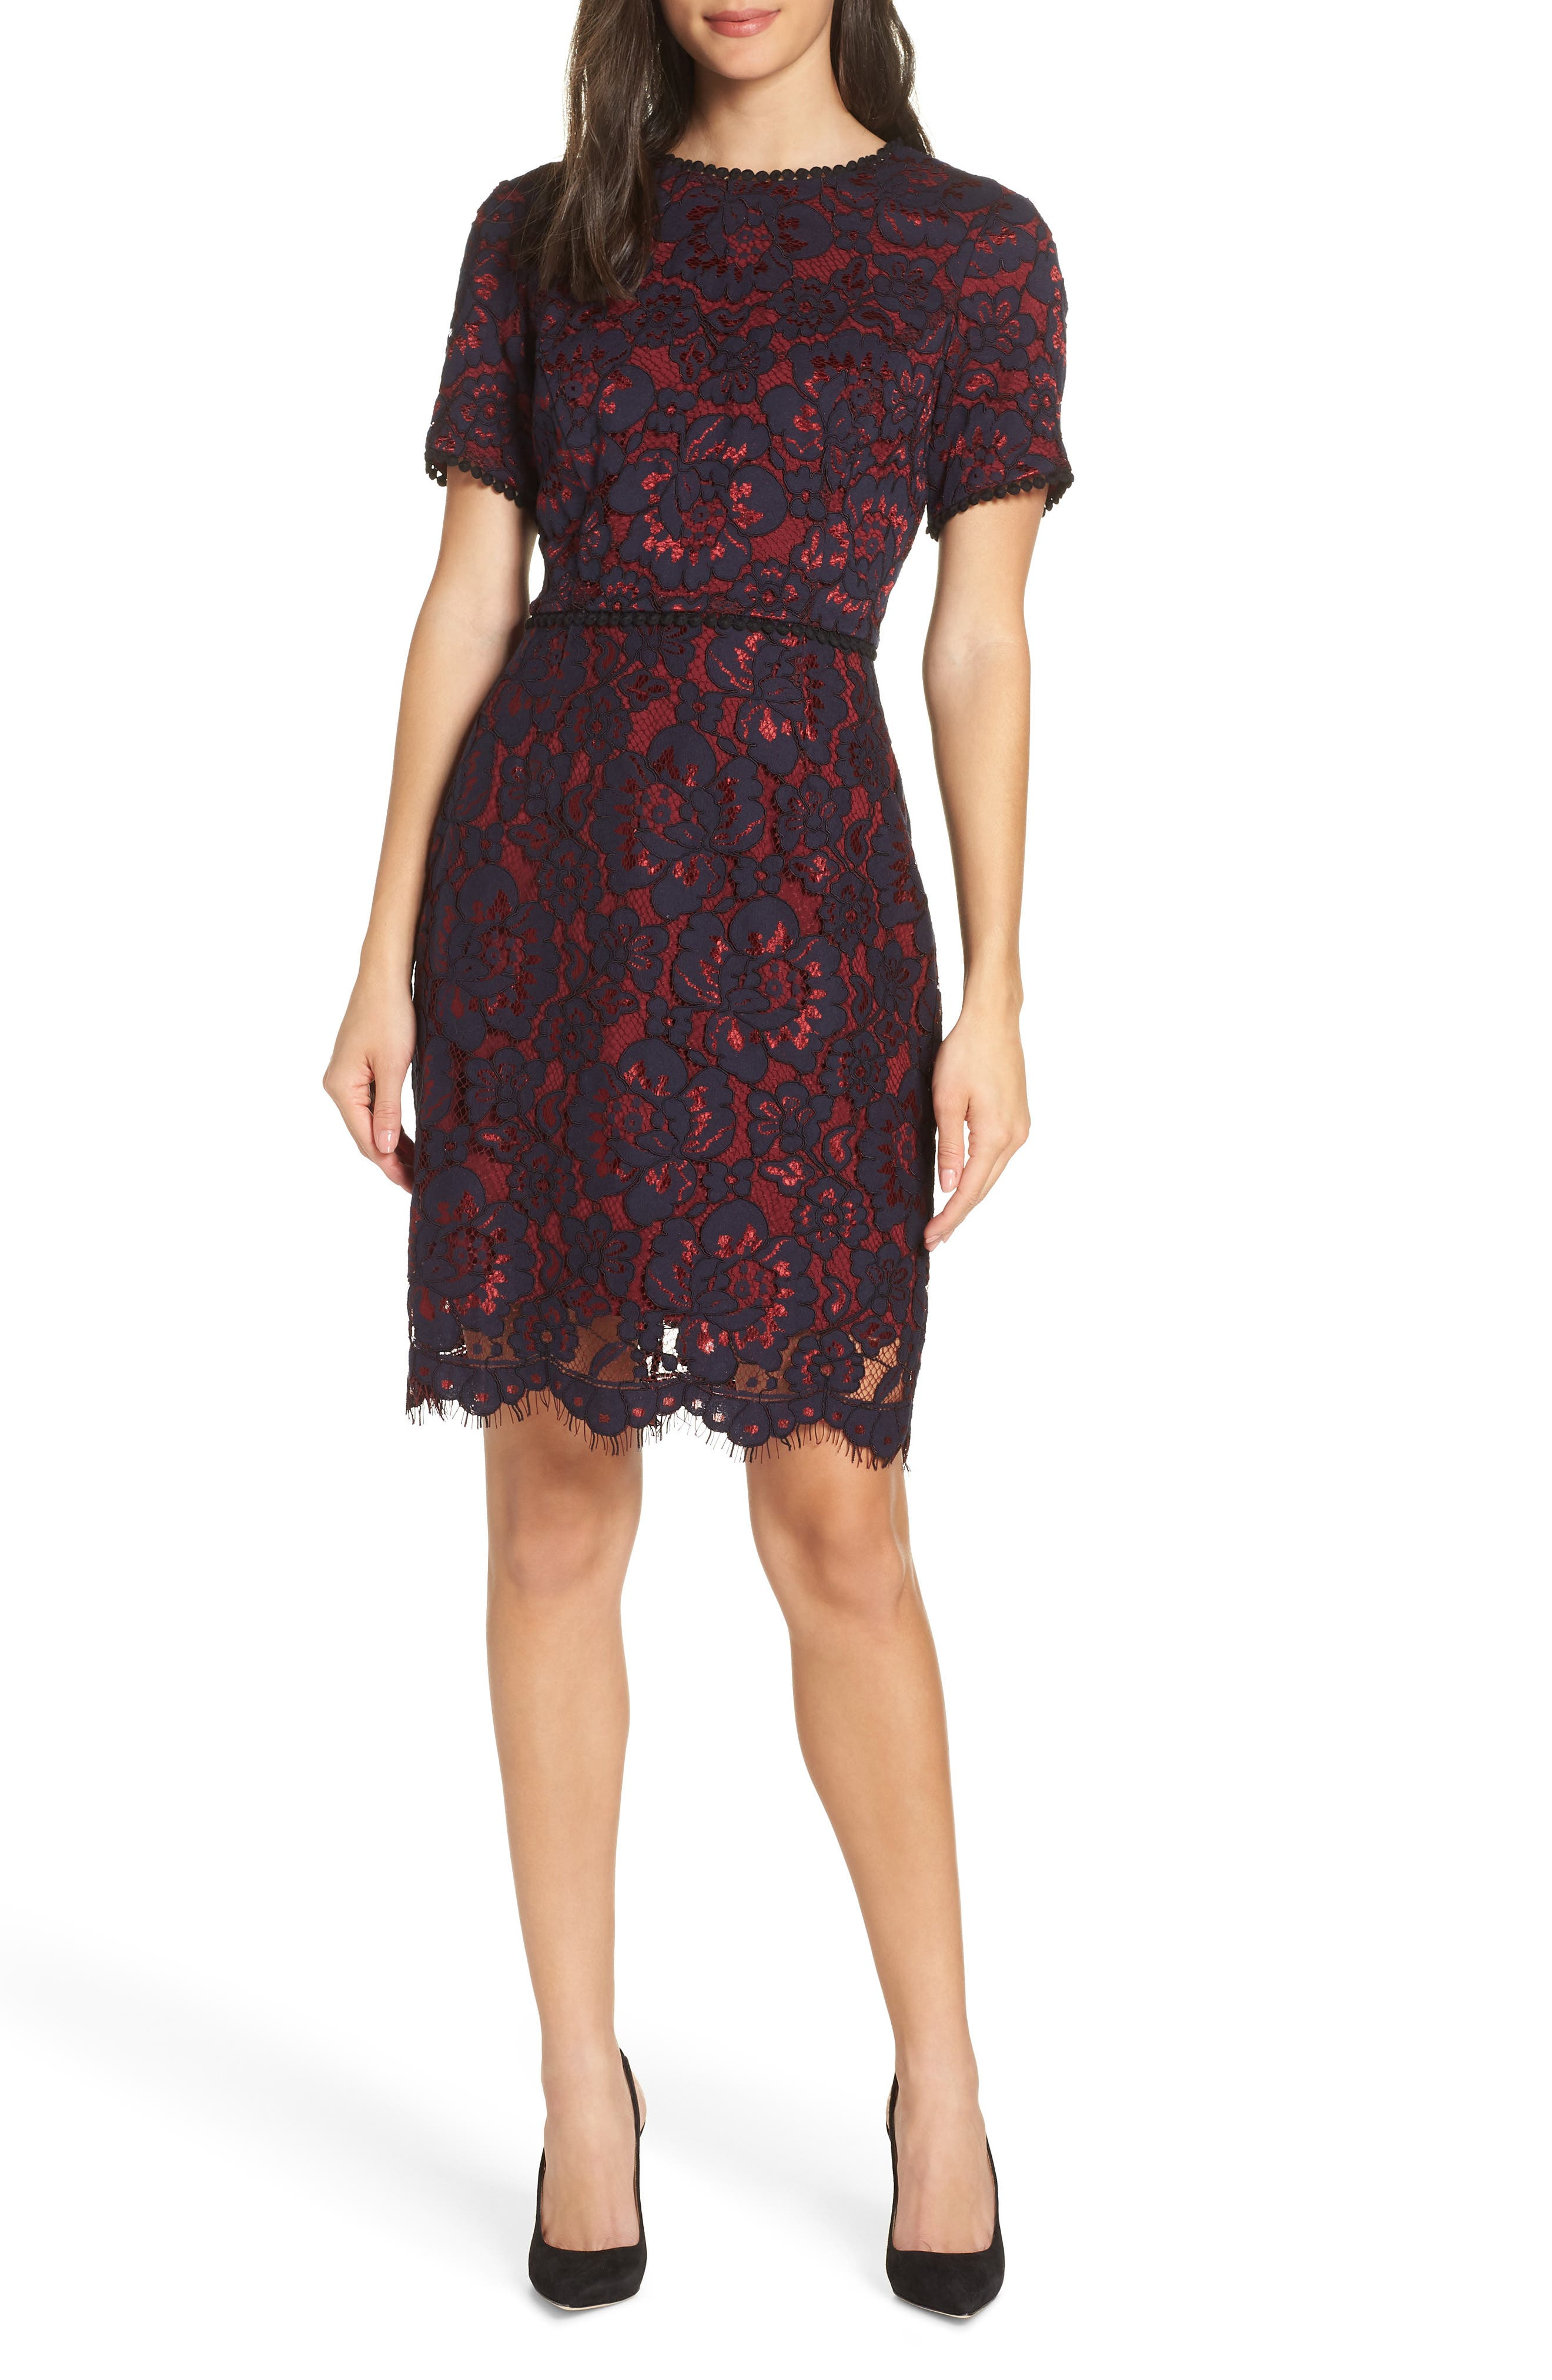 CHARLES HENRY Lace Sheath Dress, Main, color, 438